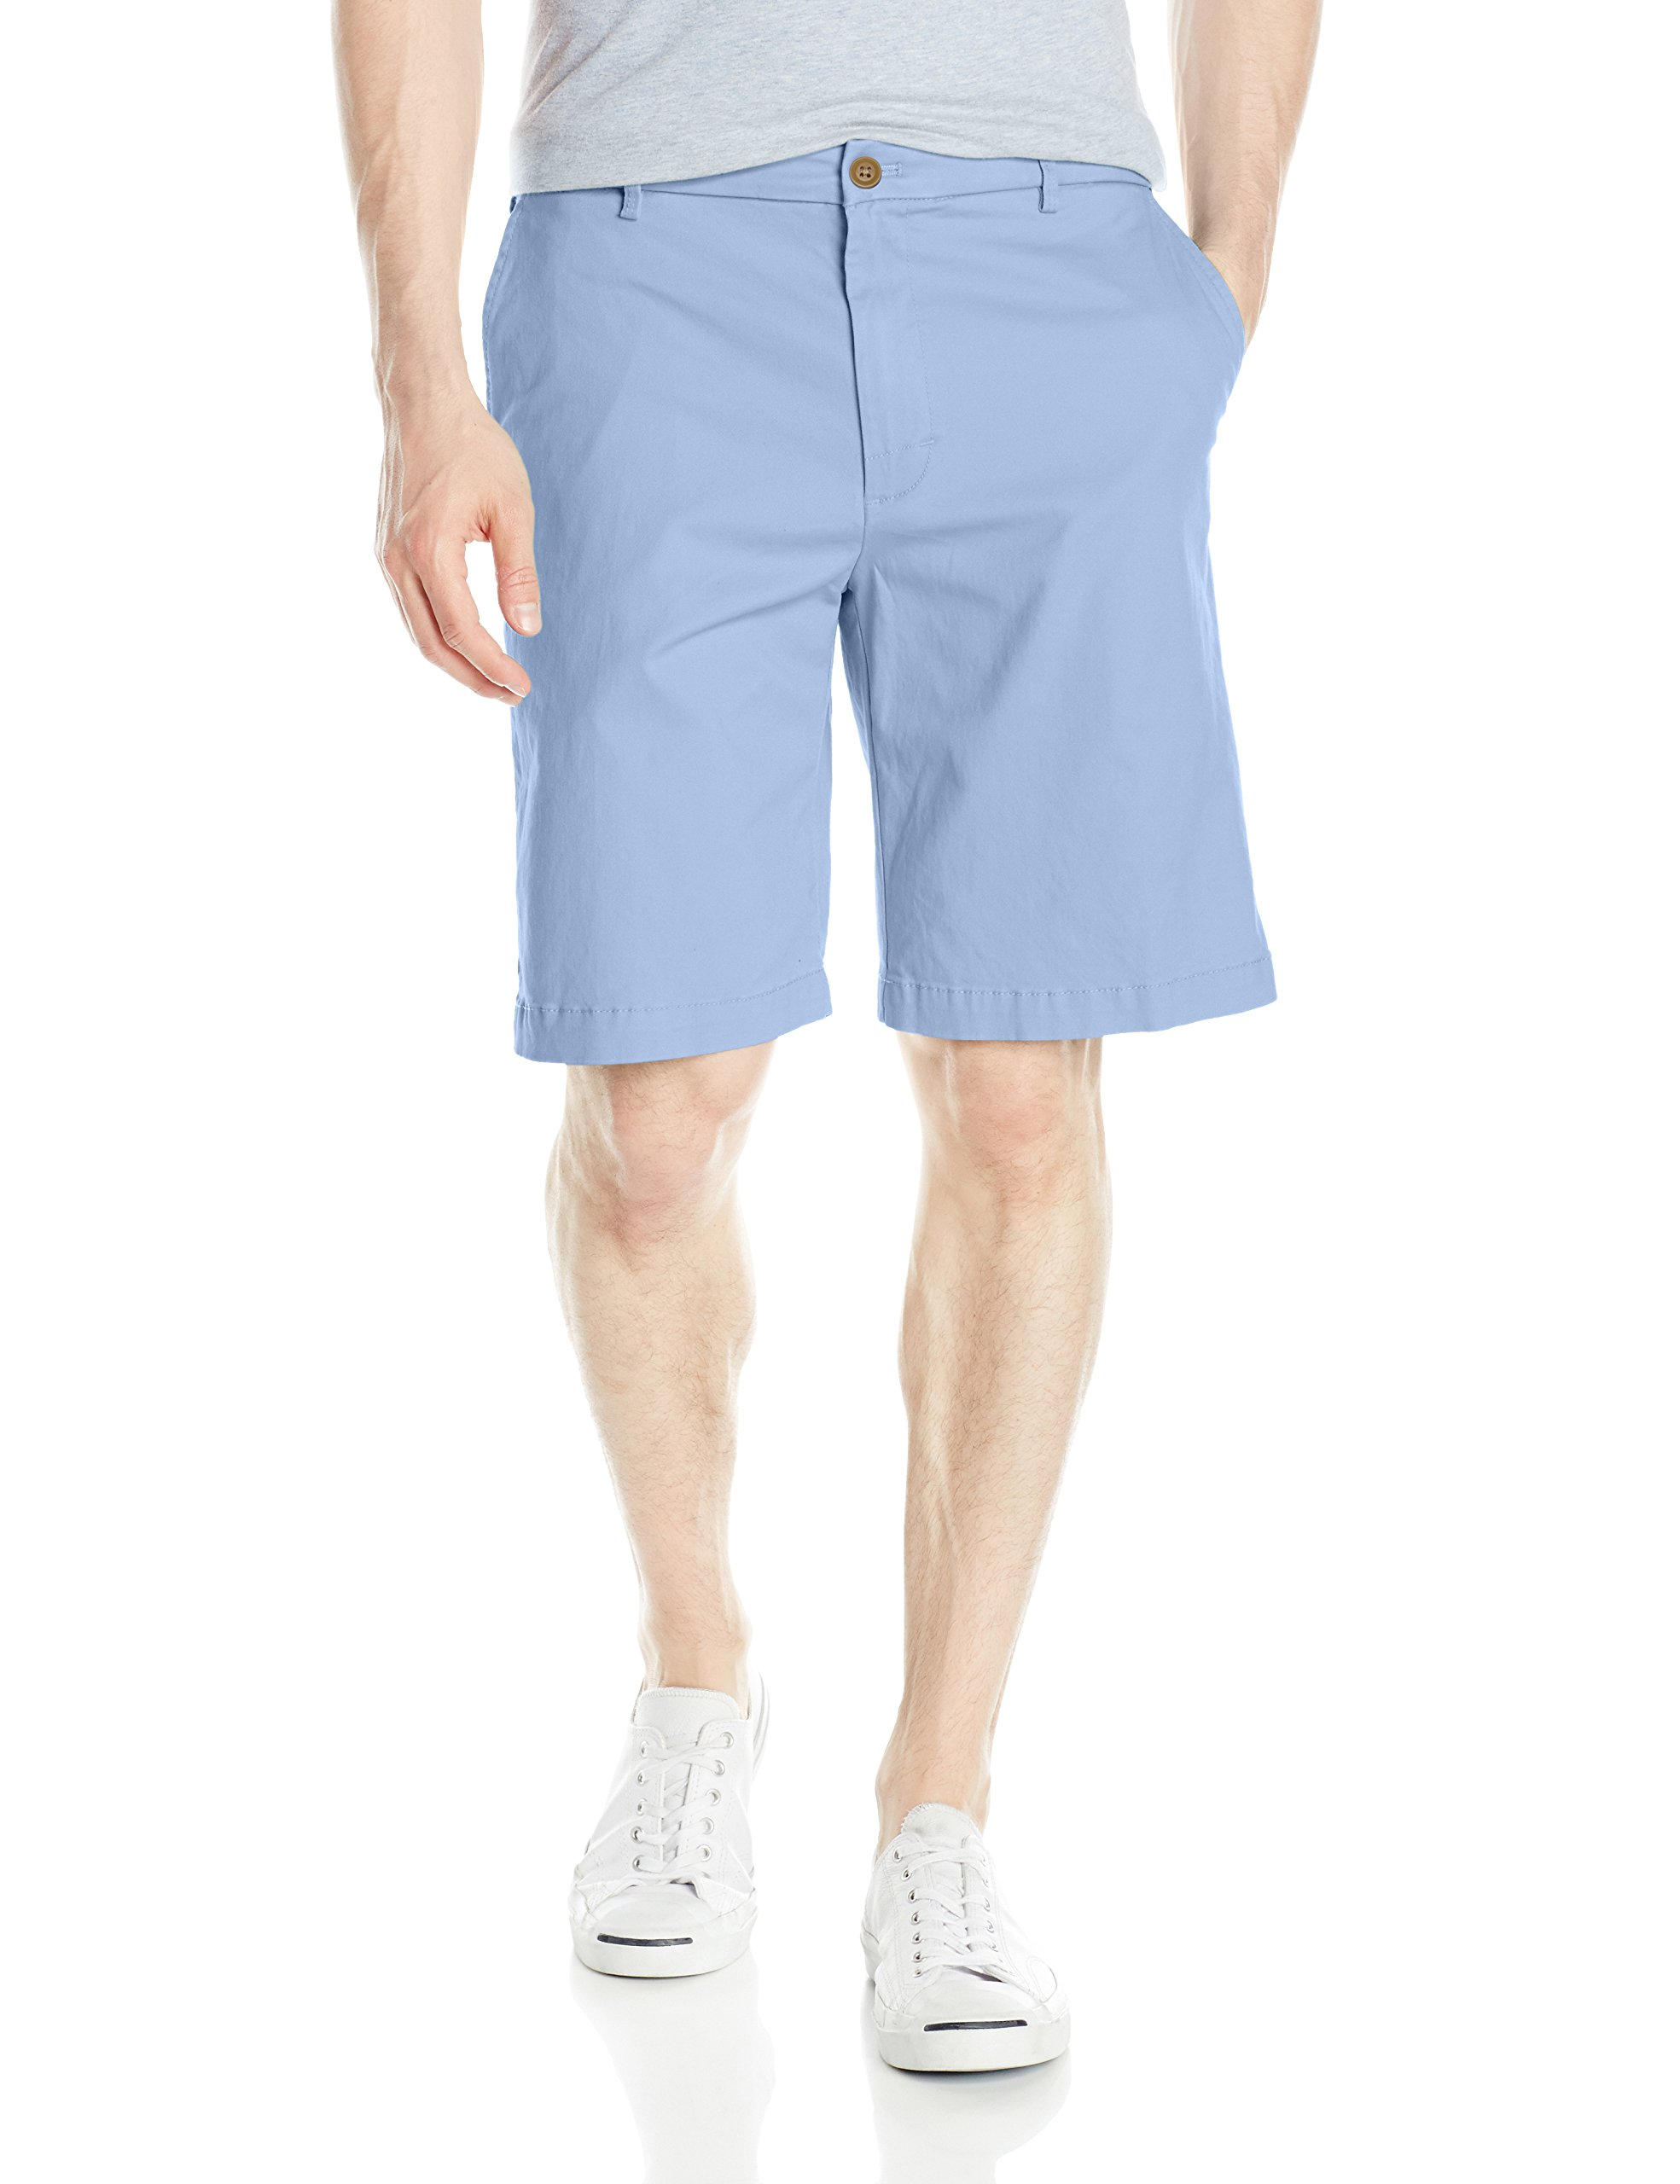 IZOD Men's Saltwater Flat Front Short, Powder Blue, 40W